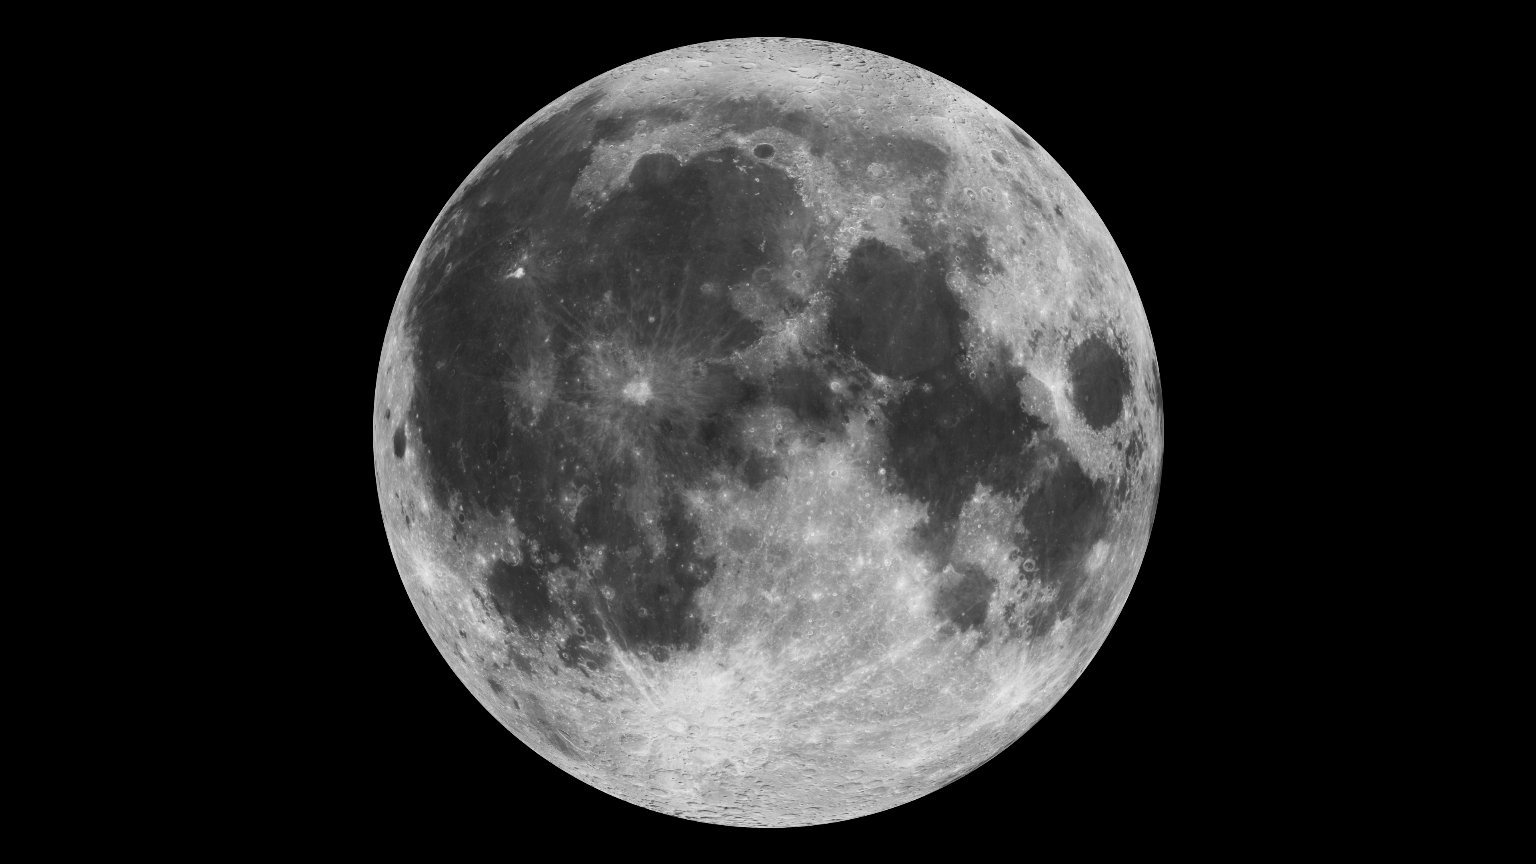 In 5 years, people will return to the moon, says NASA